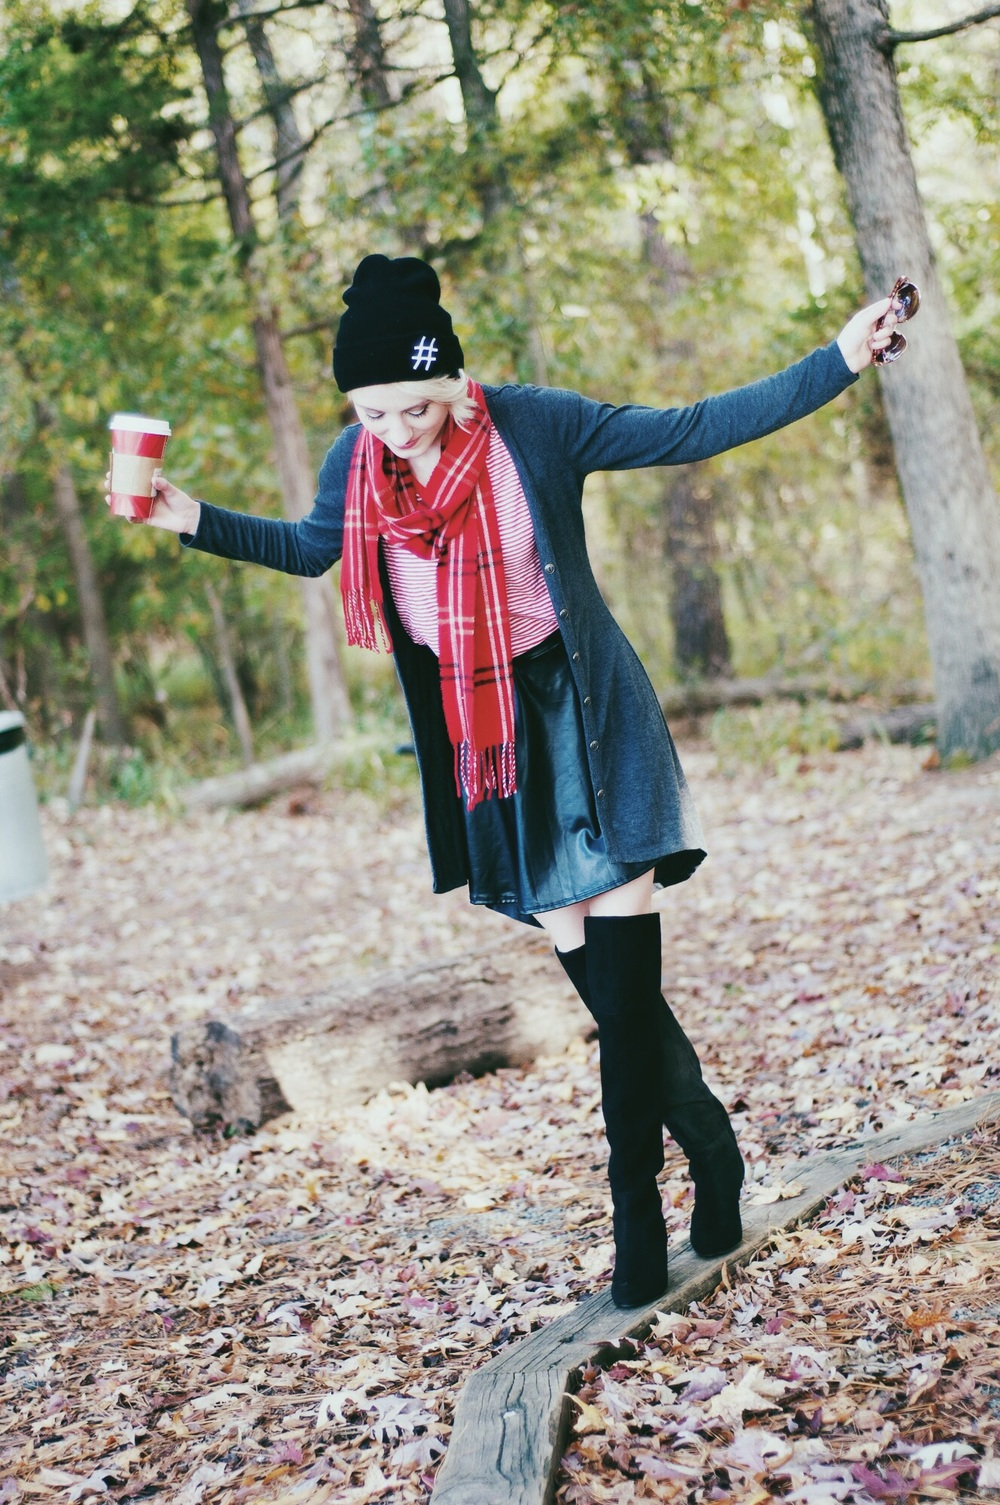 Over The Knee Boots Outfit Inspiration | Fall and winter fashion outfit inspiration by North Carolina fashion and lifestyle blogger Jessica Linn of Linn Style.